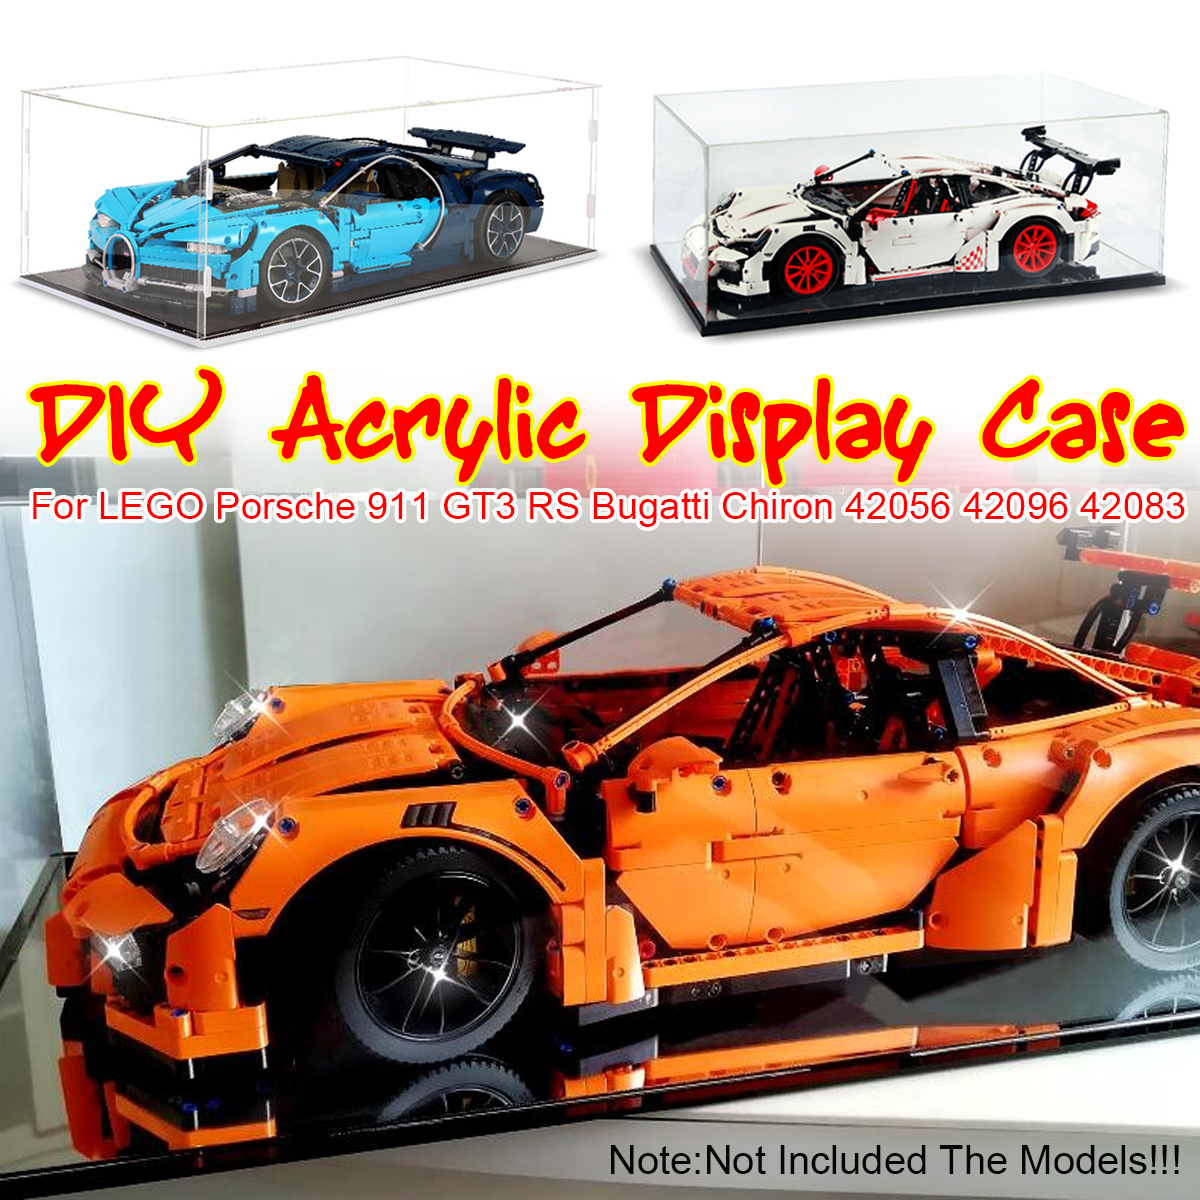 Us 52 08 50 Off Acrylic Display Case Box For Lego 42056 42096 42083 For Bugatti Chiron For Porsche 911 Gt3 Rs Technic Series Without Model In